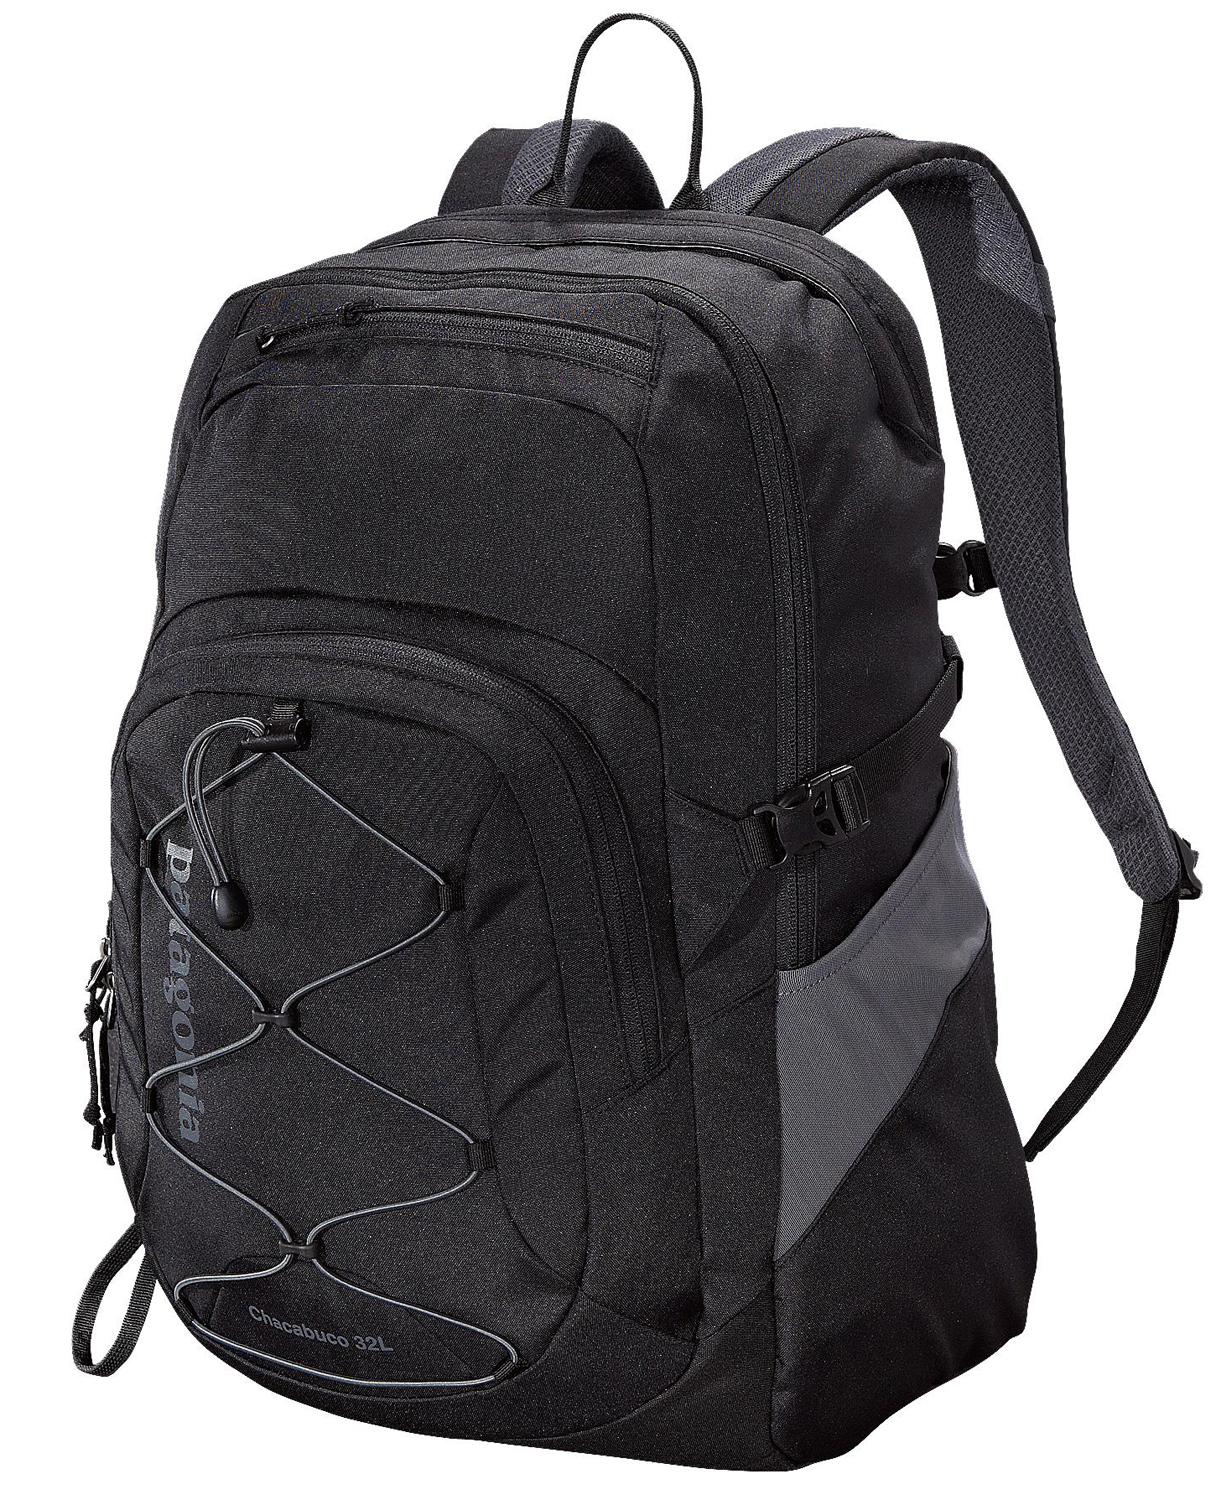 Patagonia Black Chacabuco Backpack 32L